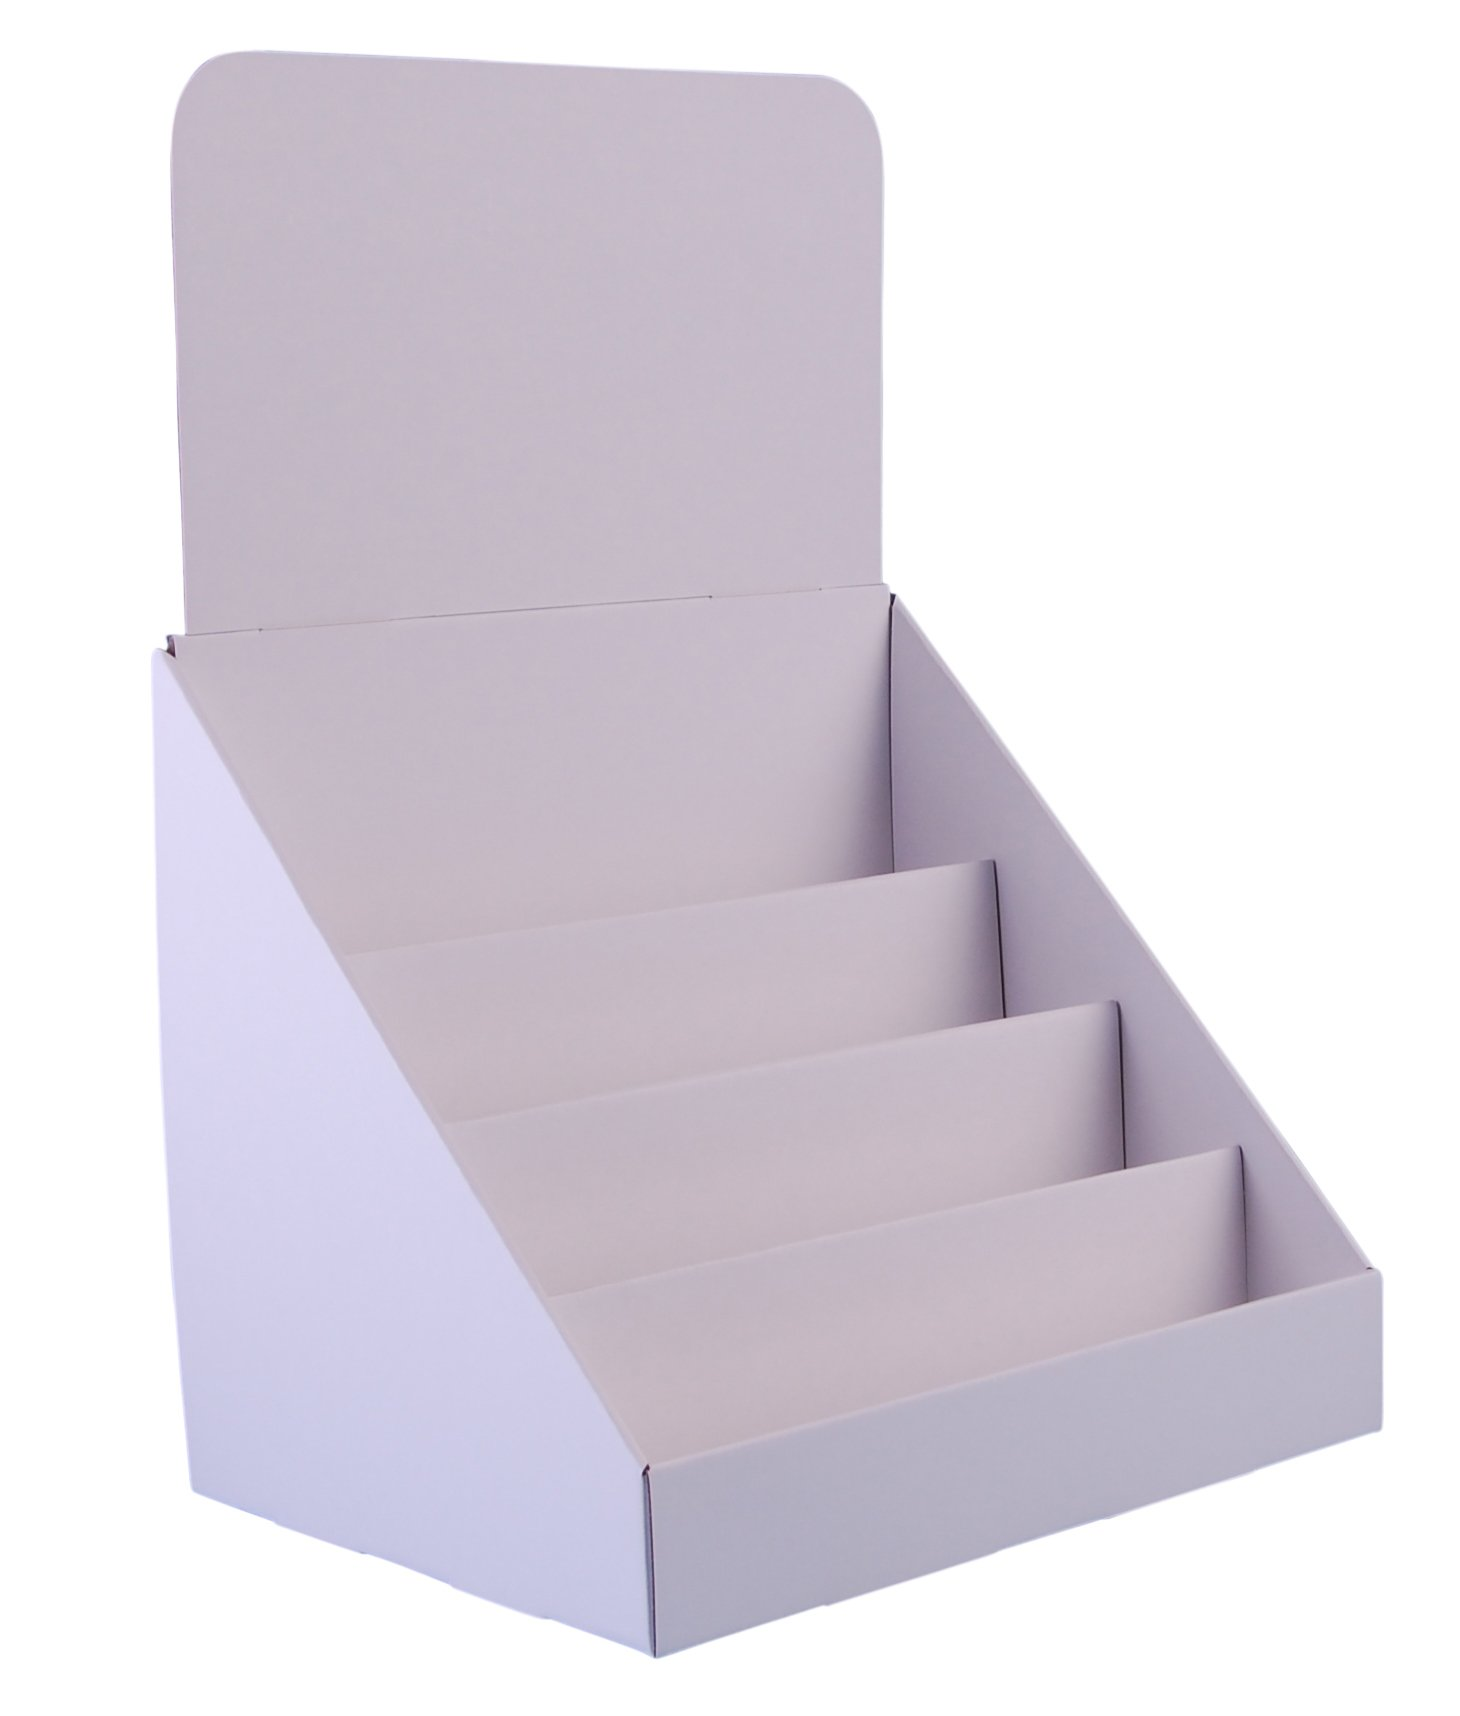 Stand Store 12 Inch 4 Tier Cardboard Greeting Card Display Stand